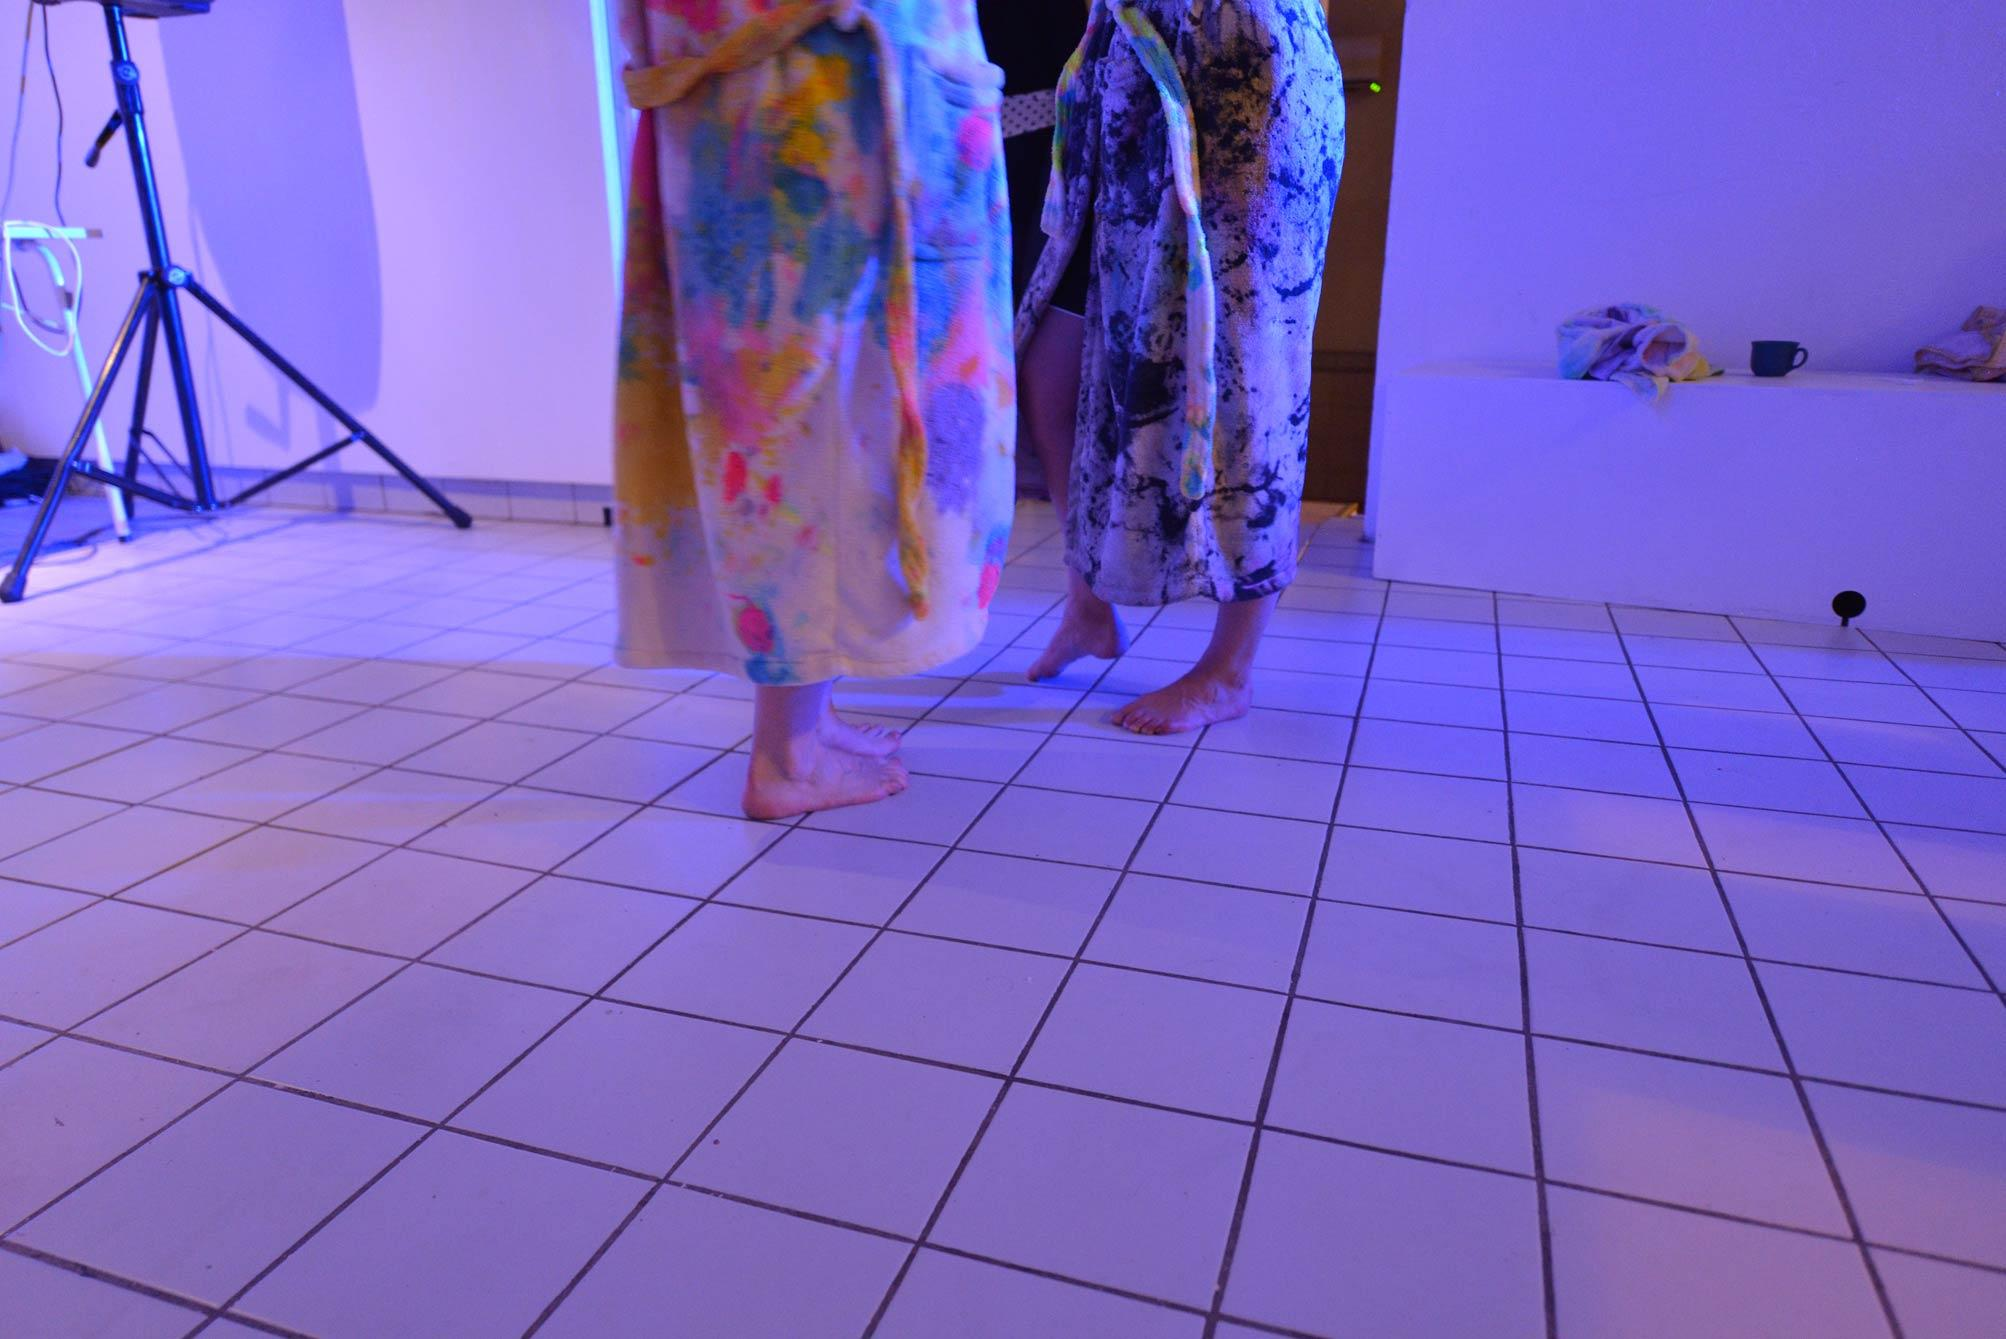 Limited edition of sauna sessions with paintings as towels and robes/ robes and towels as paintings in SmallProjects Tromso gallery. 2014.